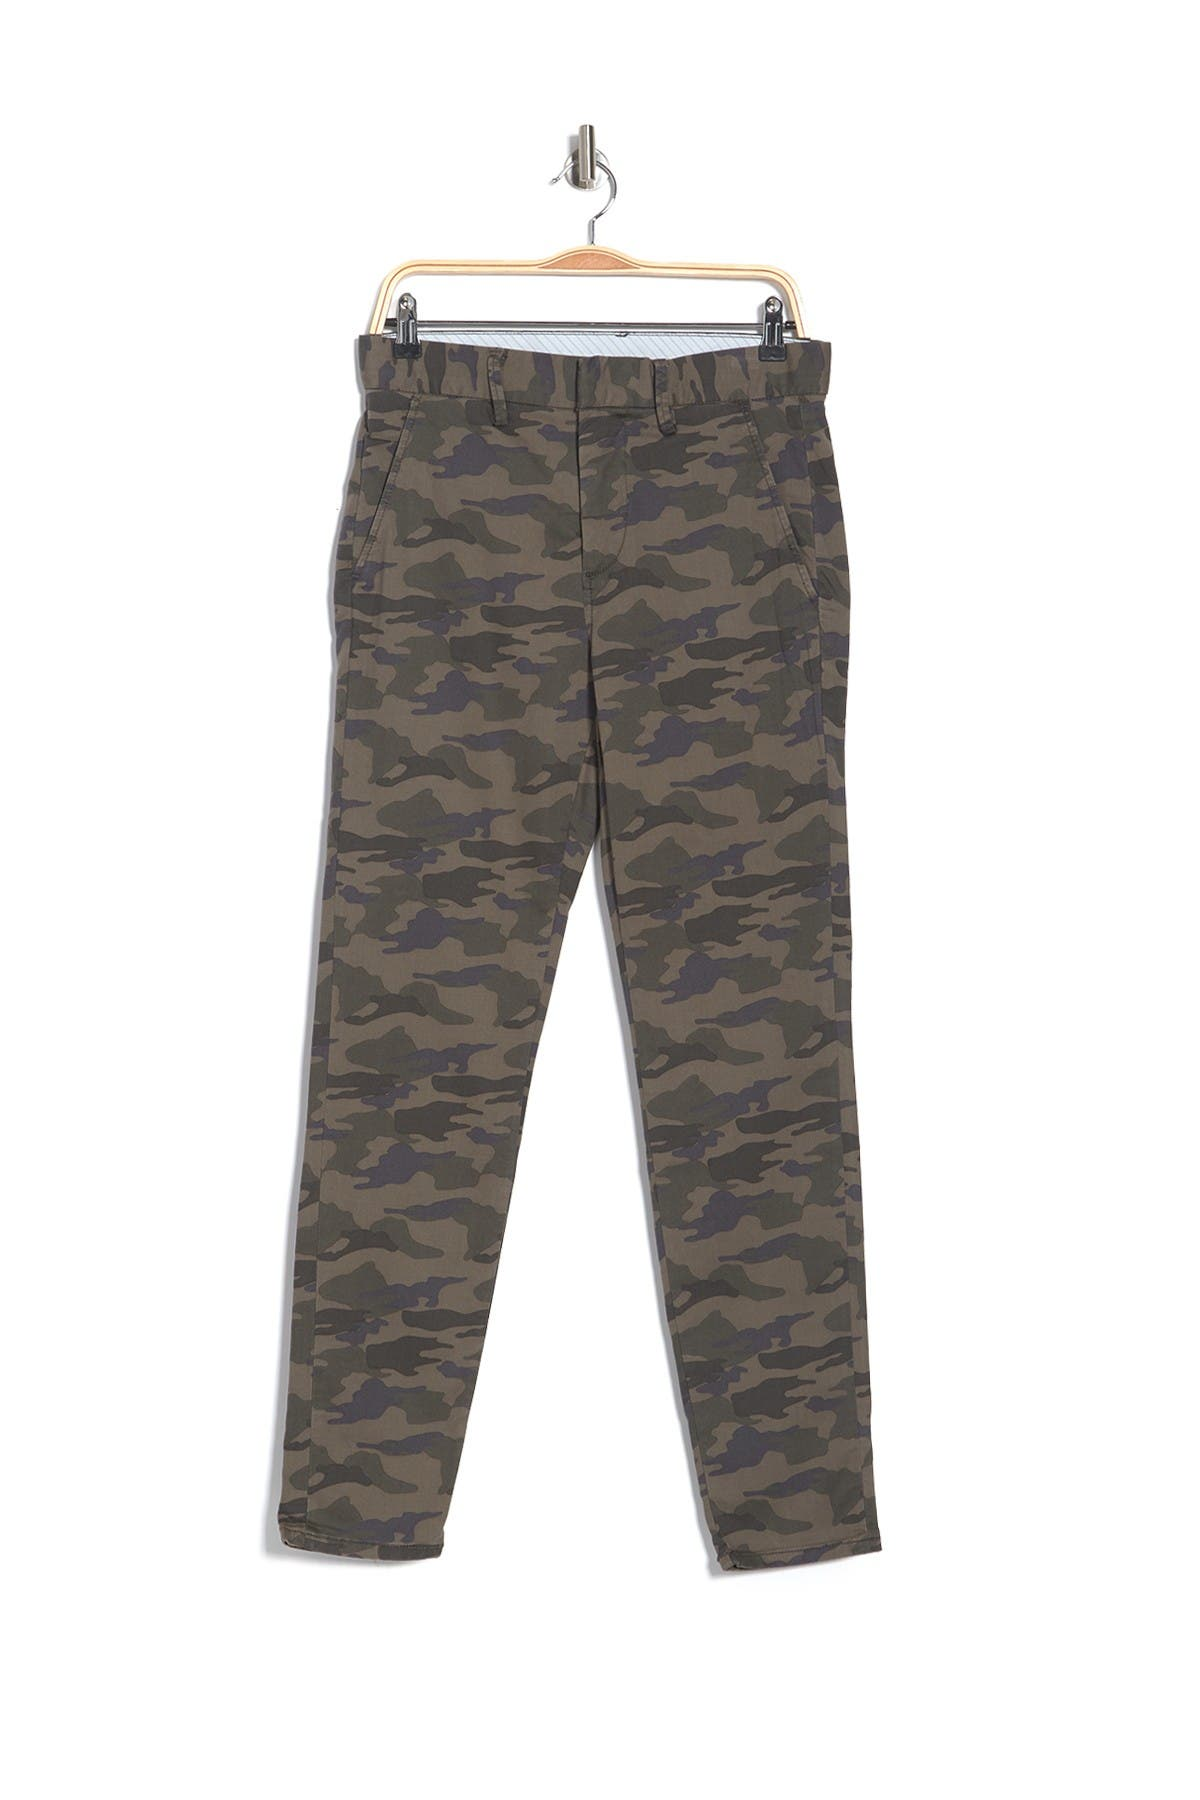 Image of Joe's Jeans The Soder Camo Print Pants